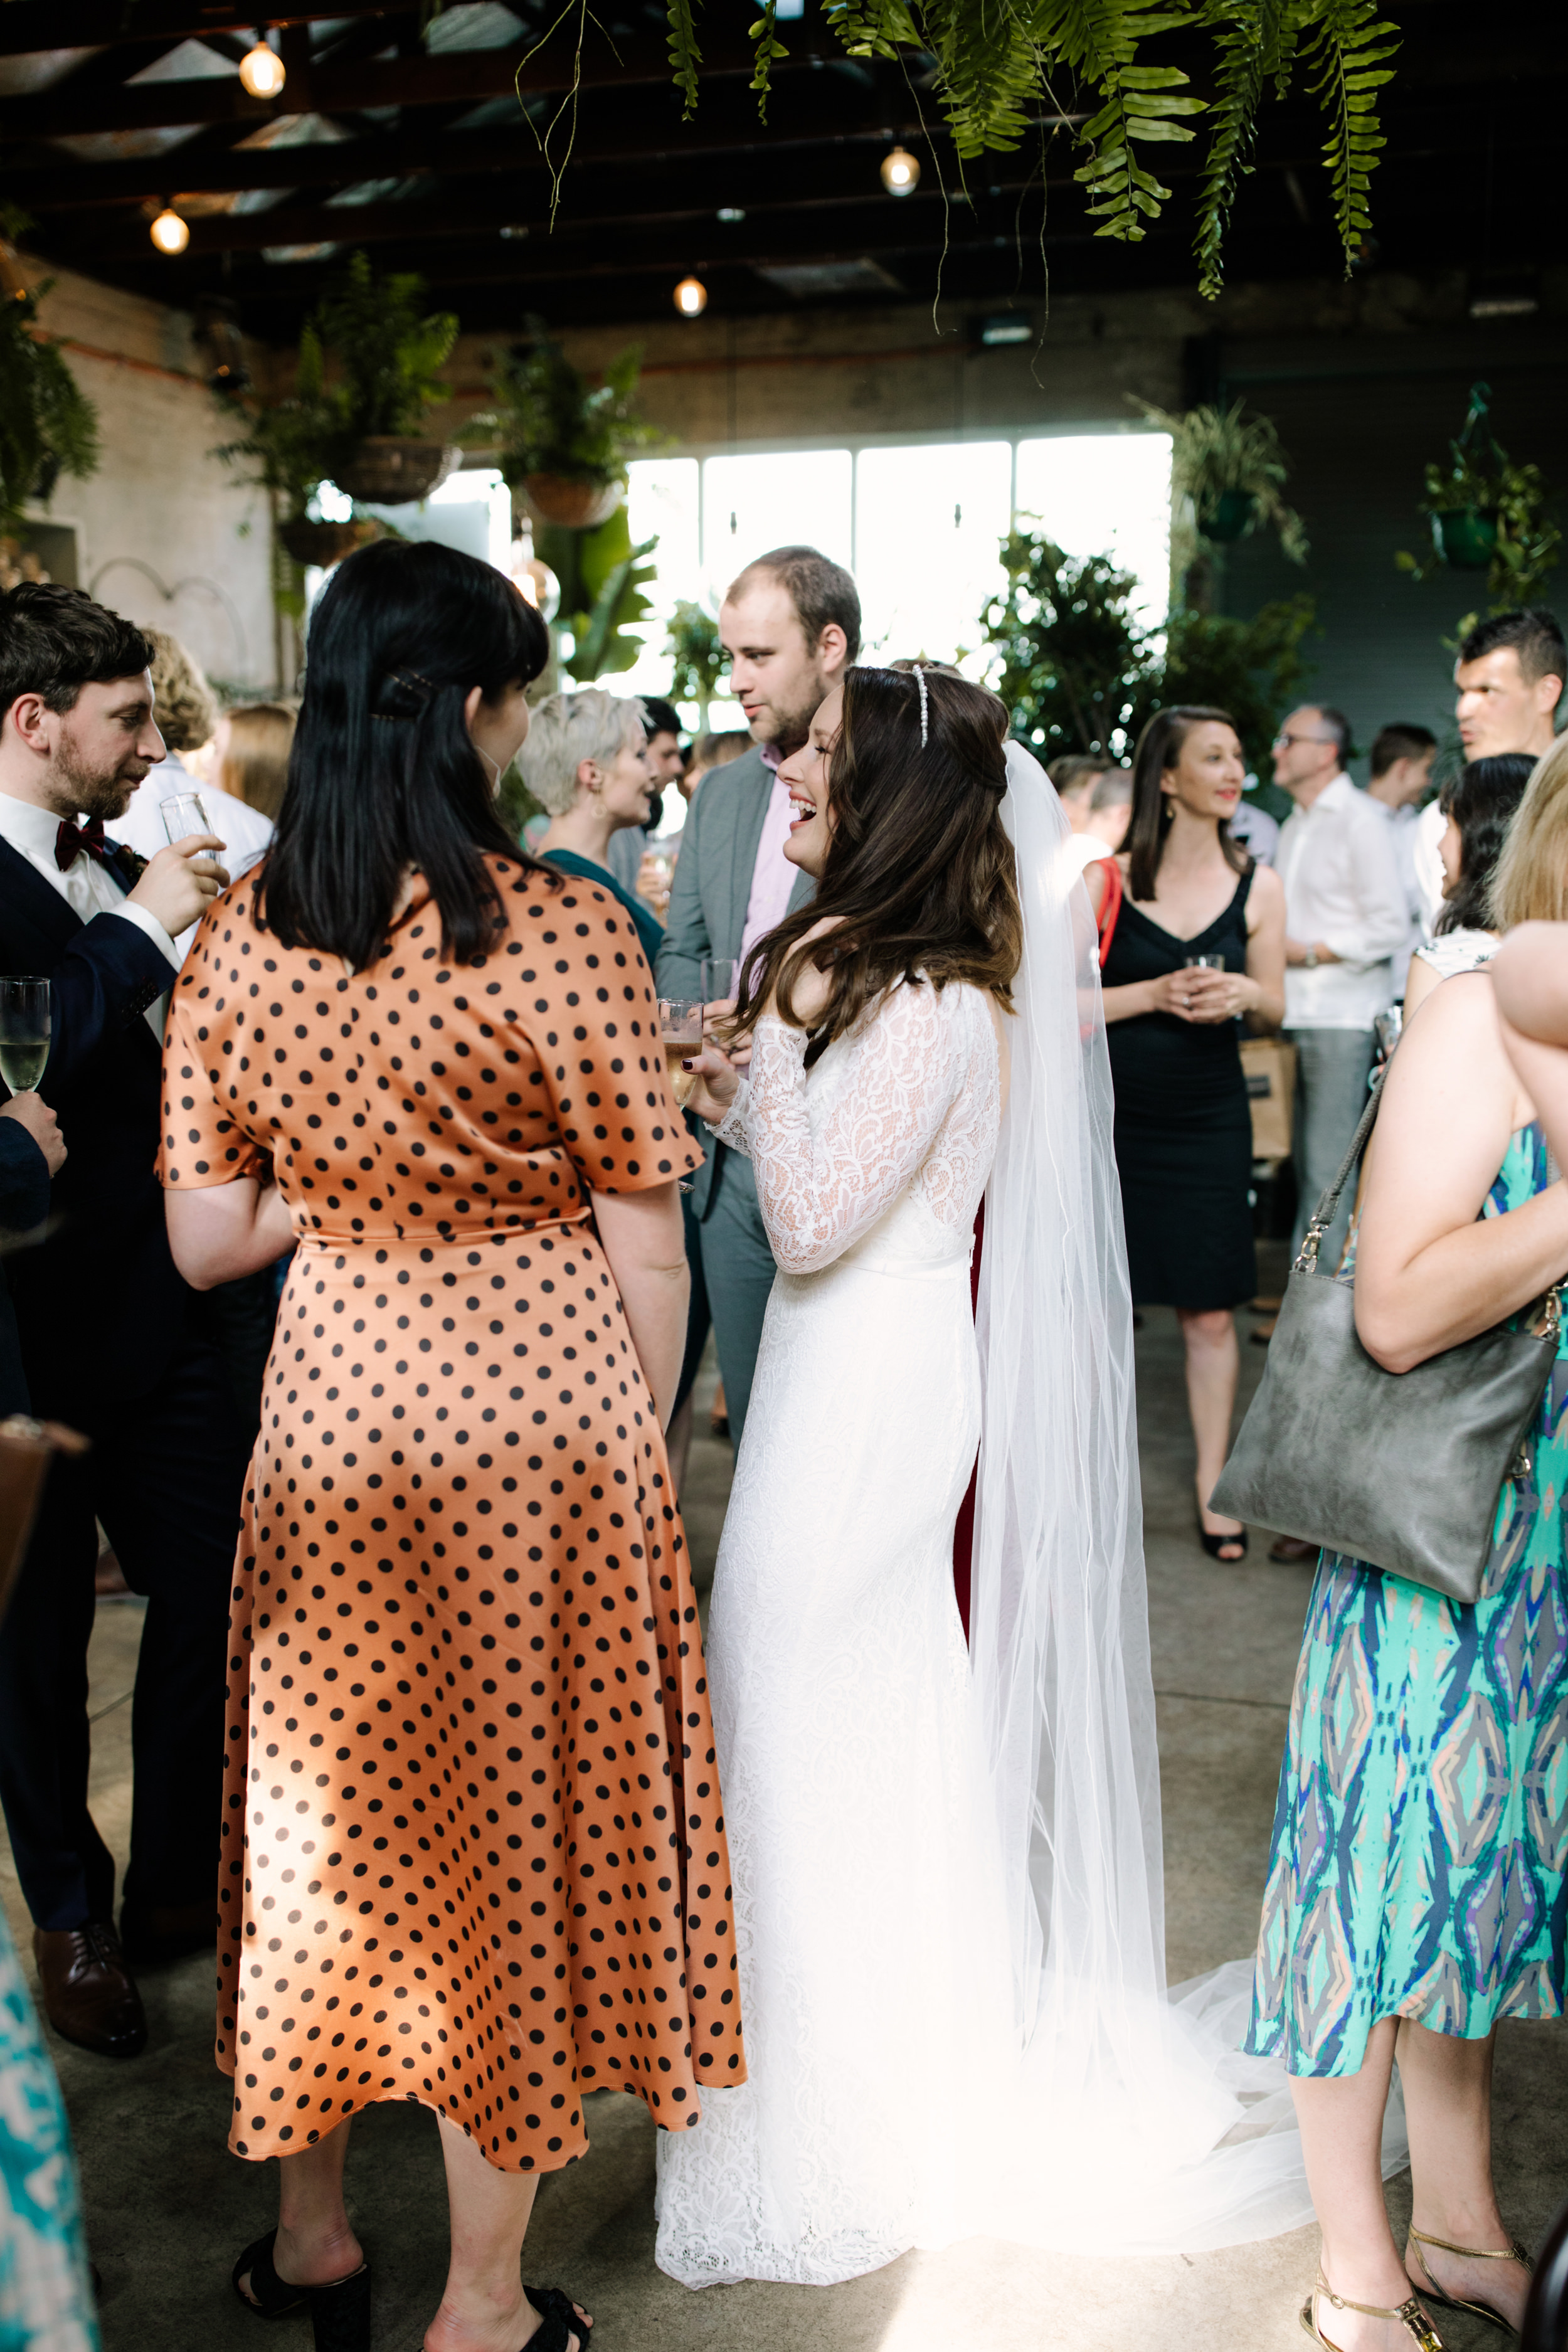 I_Got_You_Babe_Weddings_Emily_Matt_Rupert_Glasshaus_Melbourne0096.JPG